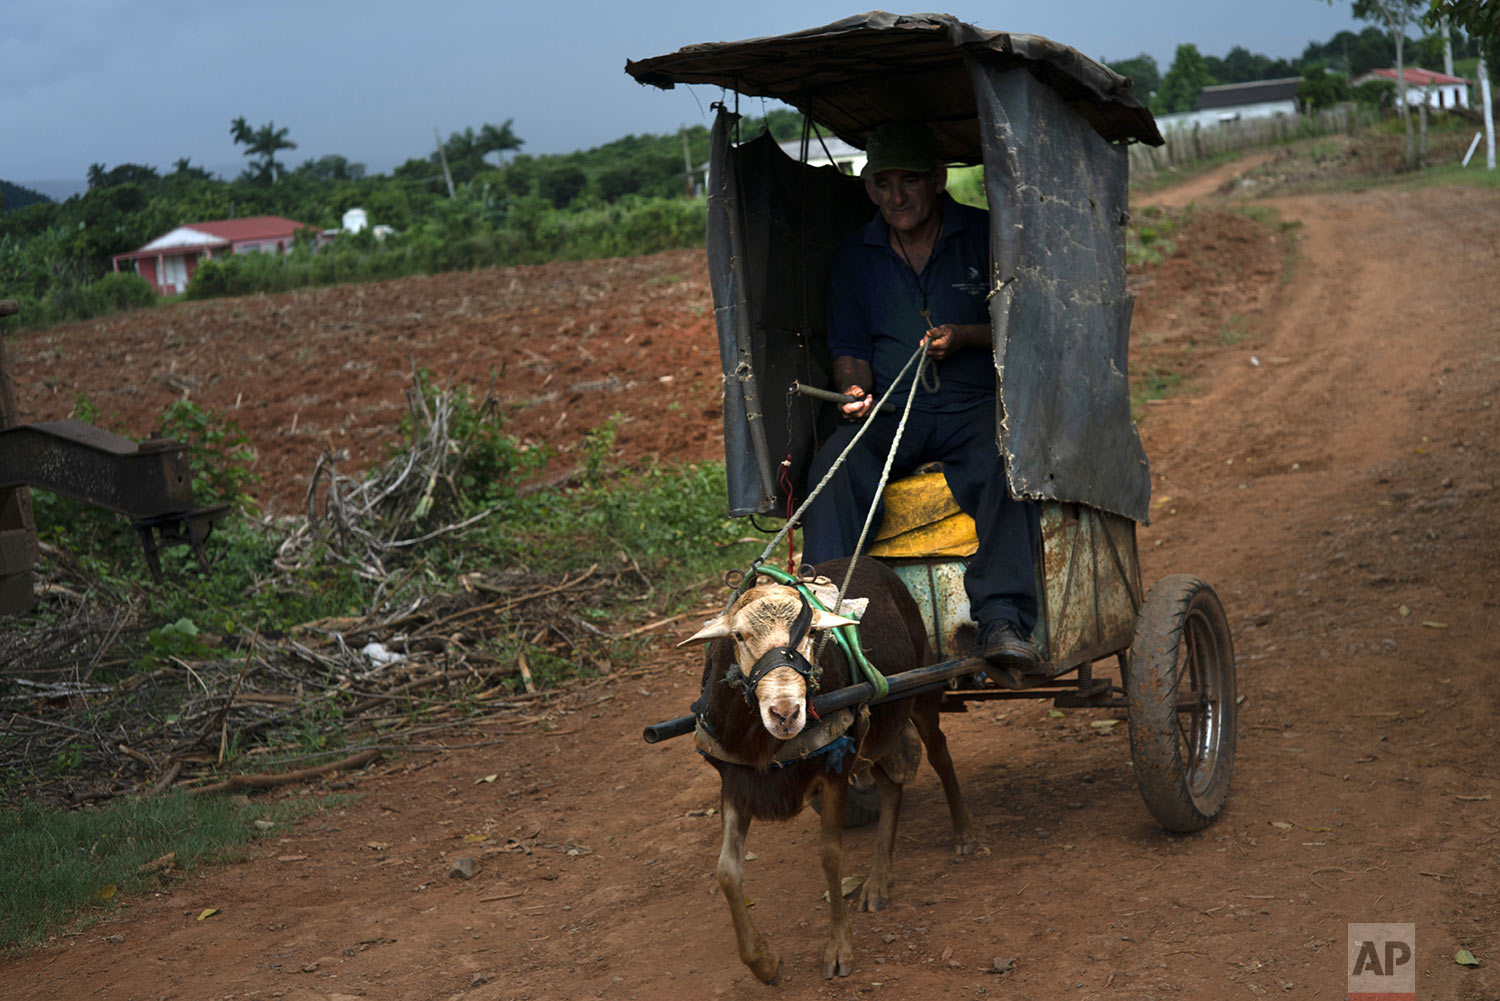 In this Aug. 24, 2019 photo, Andres Palomino Gallardo travels in his cart pulled by a goat along the roads of El Infernal neighborhood in San Andres in the province of Pinar del Río, Cuba. Gallardo uses his cart to make deliveries. (AP Photo/Ramon Espinosa)